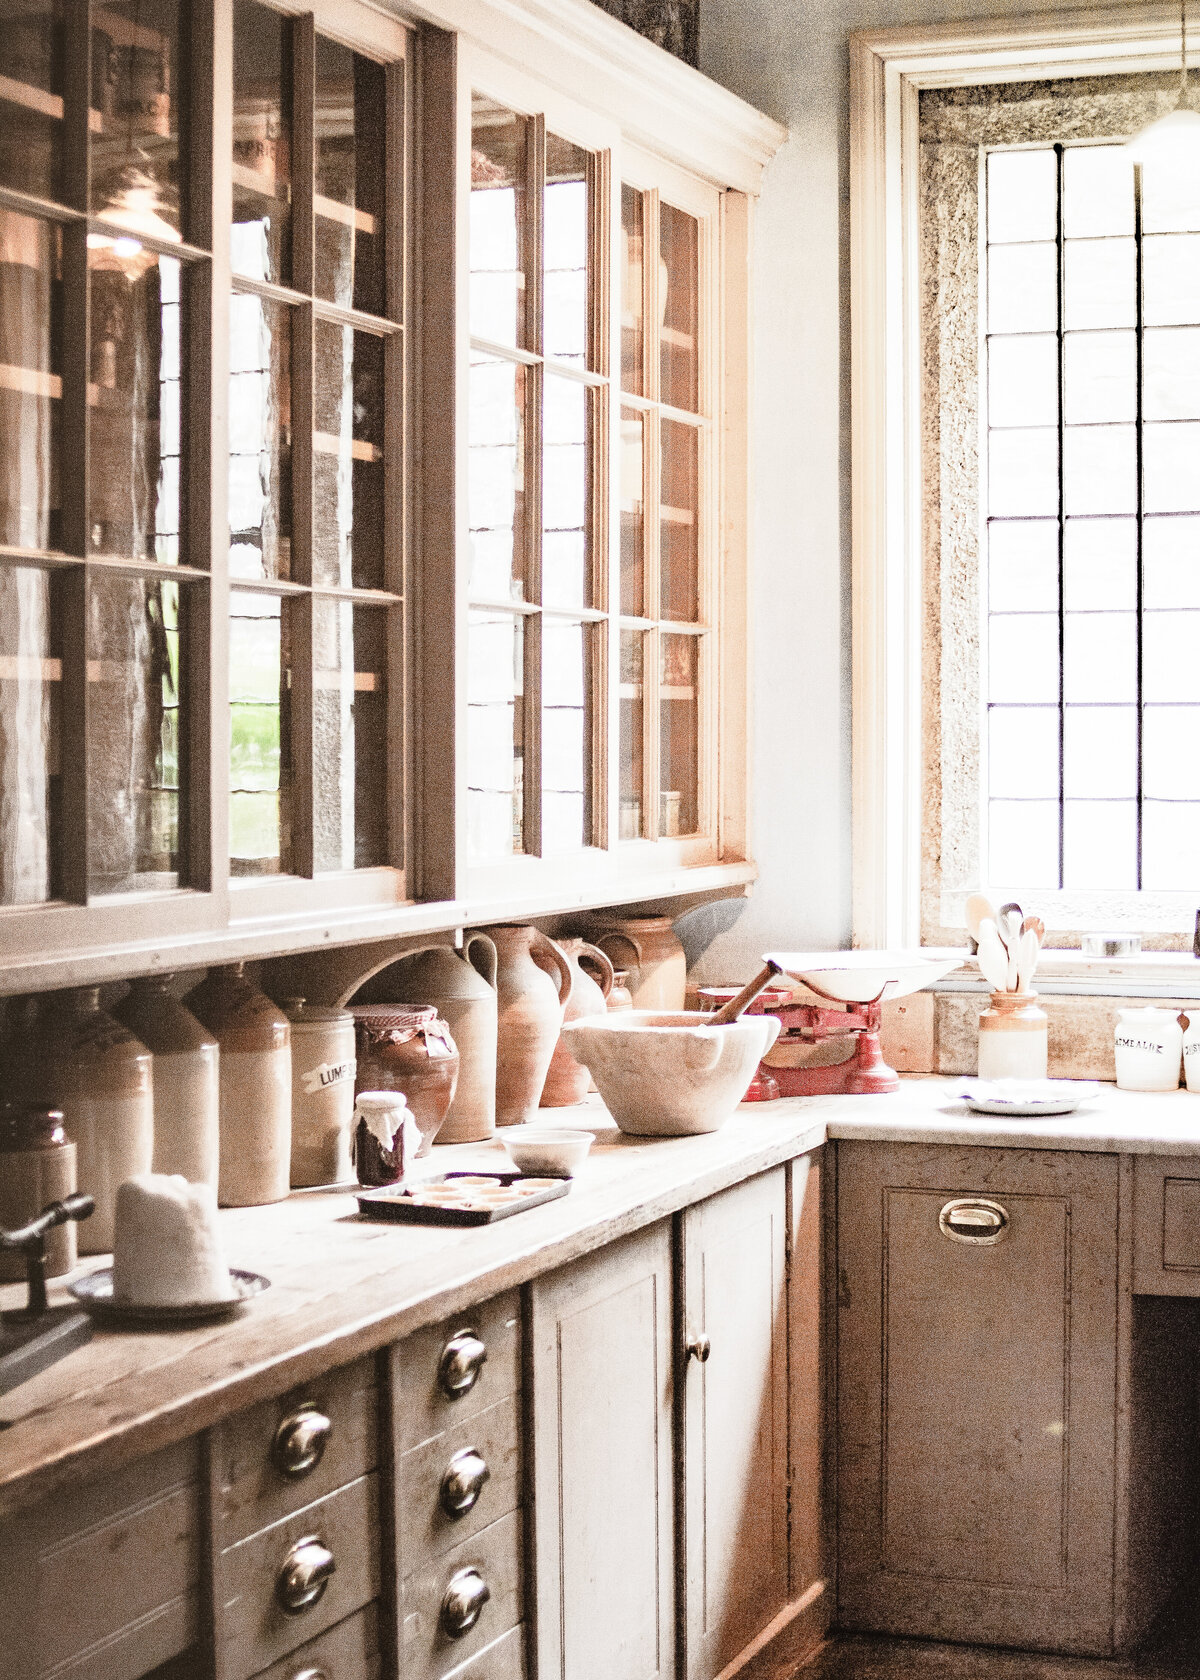 Natural wooden units hold traditional pottery milk churns in a rustic utility room.